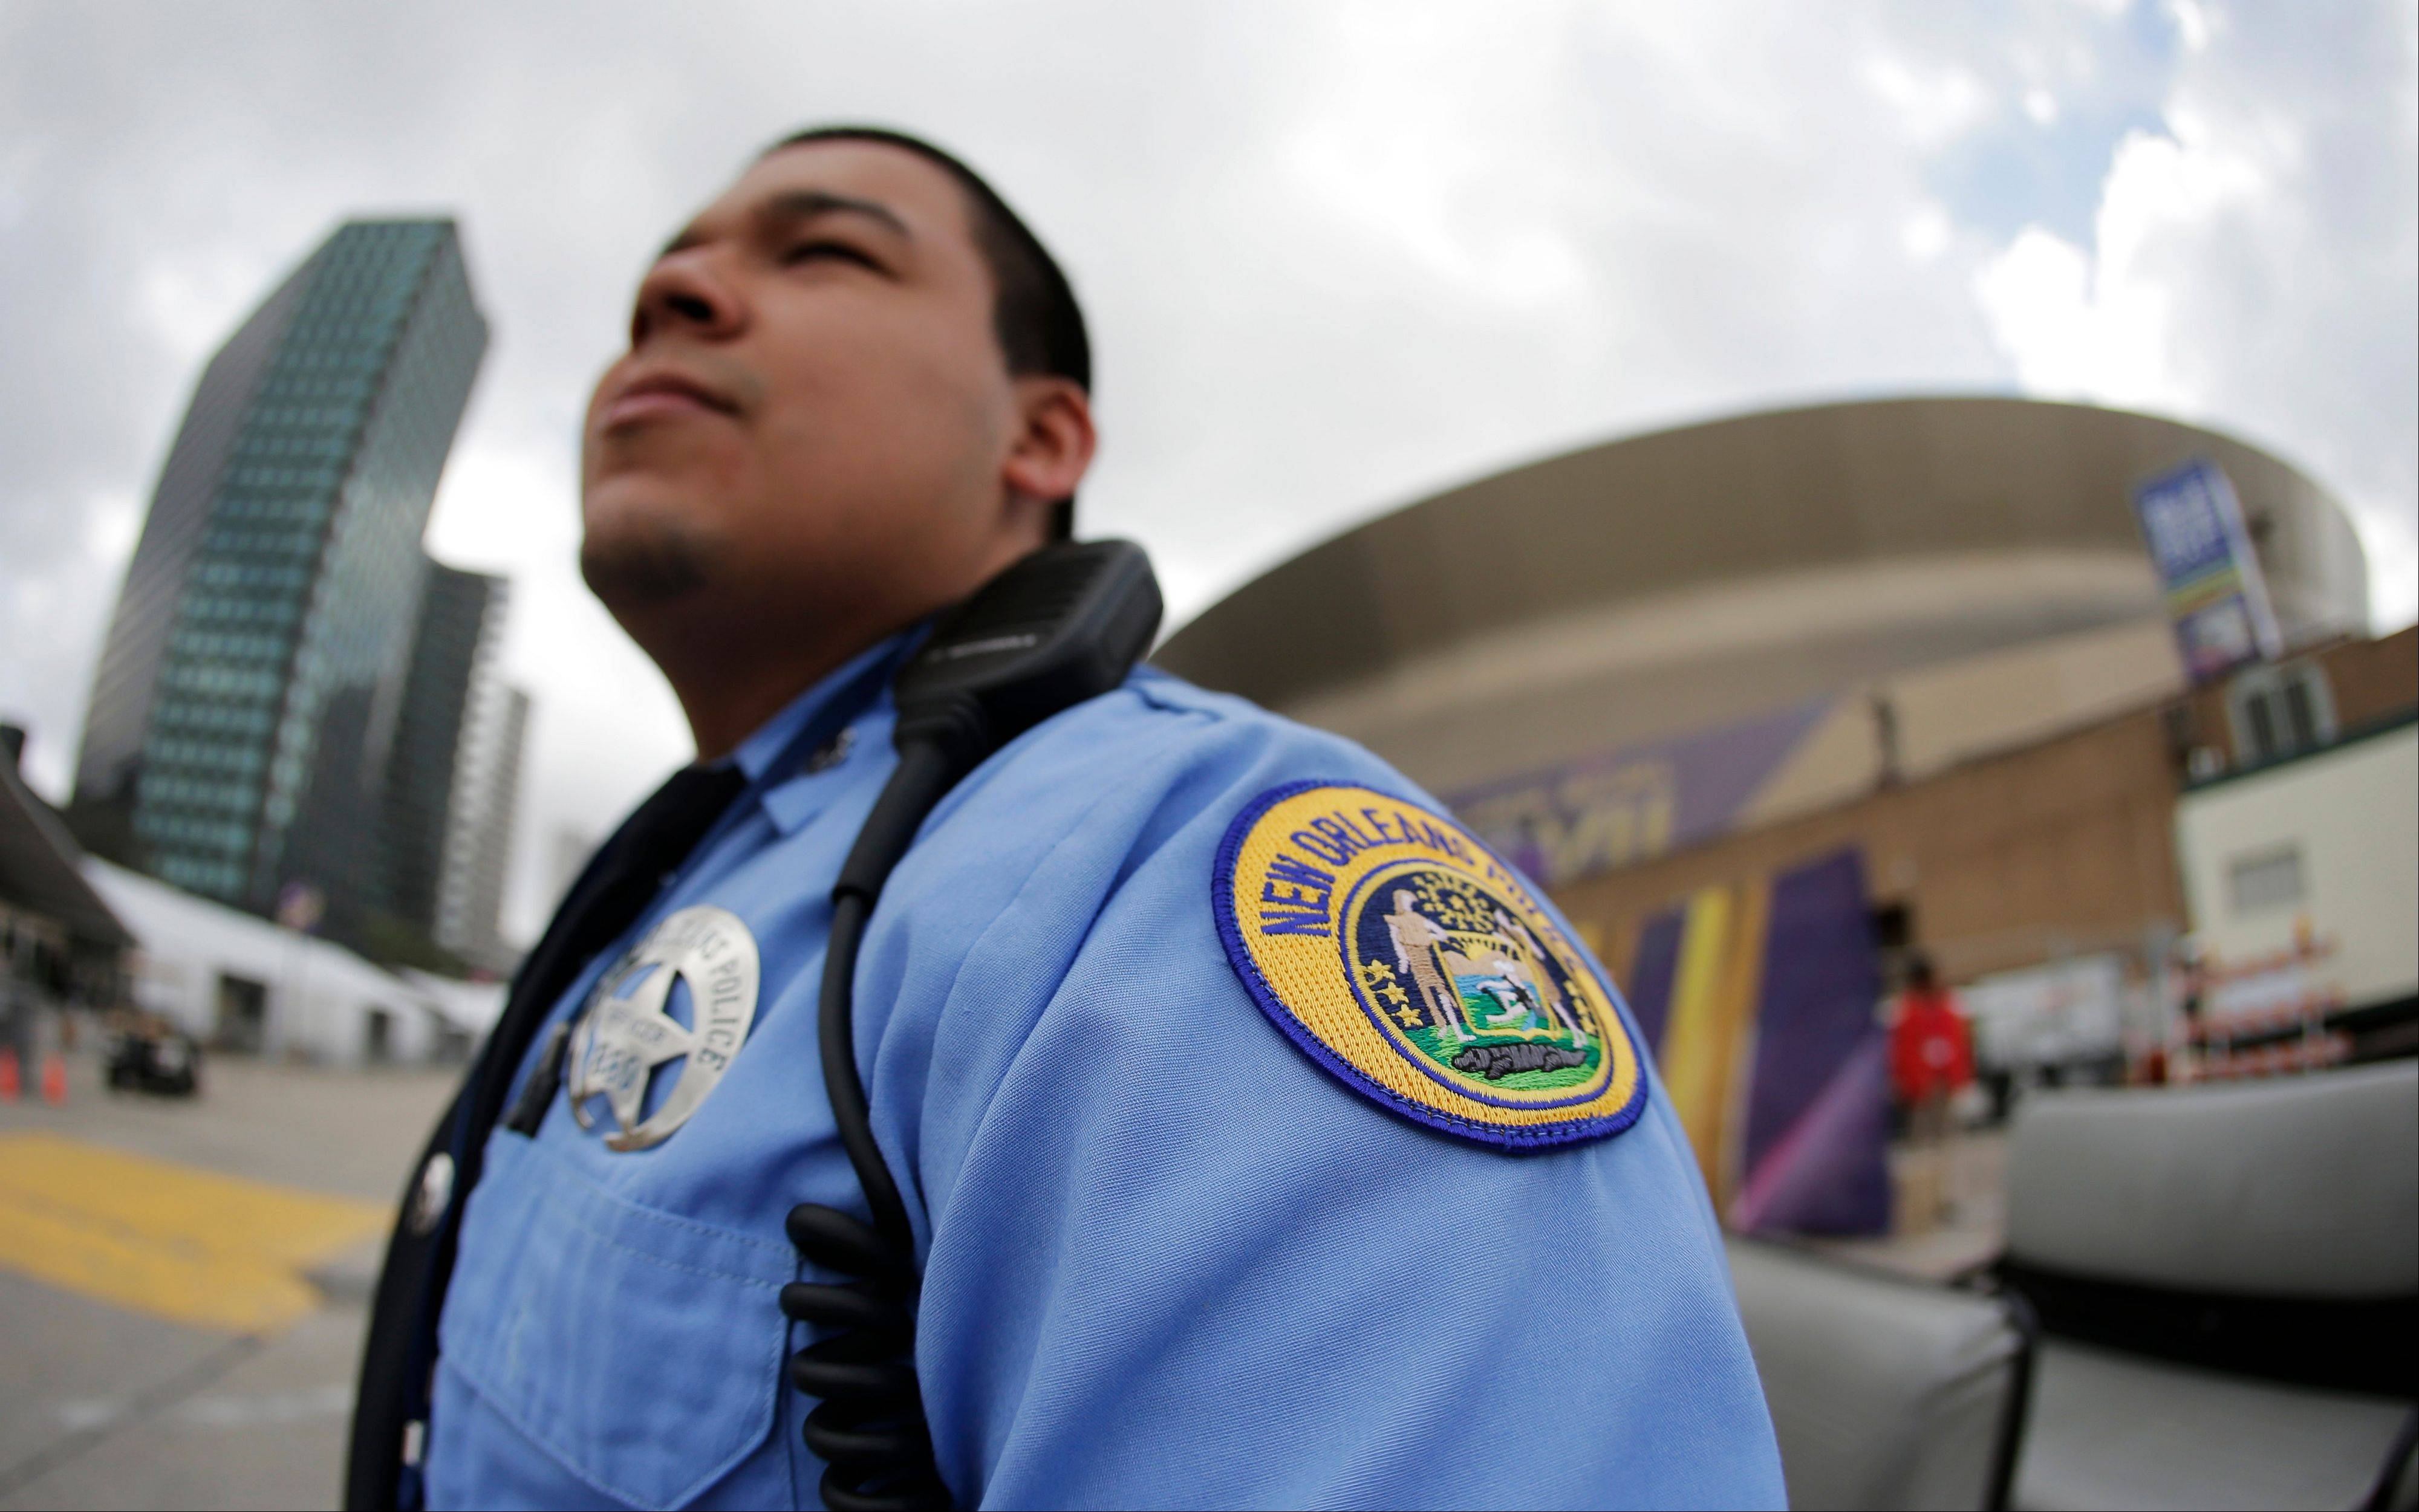 New Orleans police are in the middle of an unprecedented security challenge with an estimated 150,000 Super Bowl fans packing the city during the raucous annual buildup to Mardi Gras, when thousands of revelers flock to the historic French Quarter and its restaurants, bars and strip clubs.